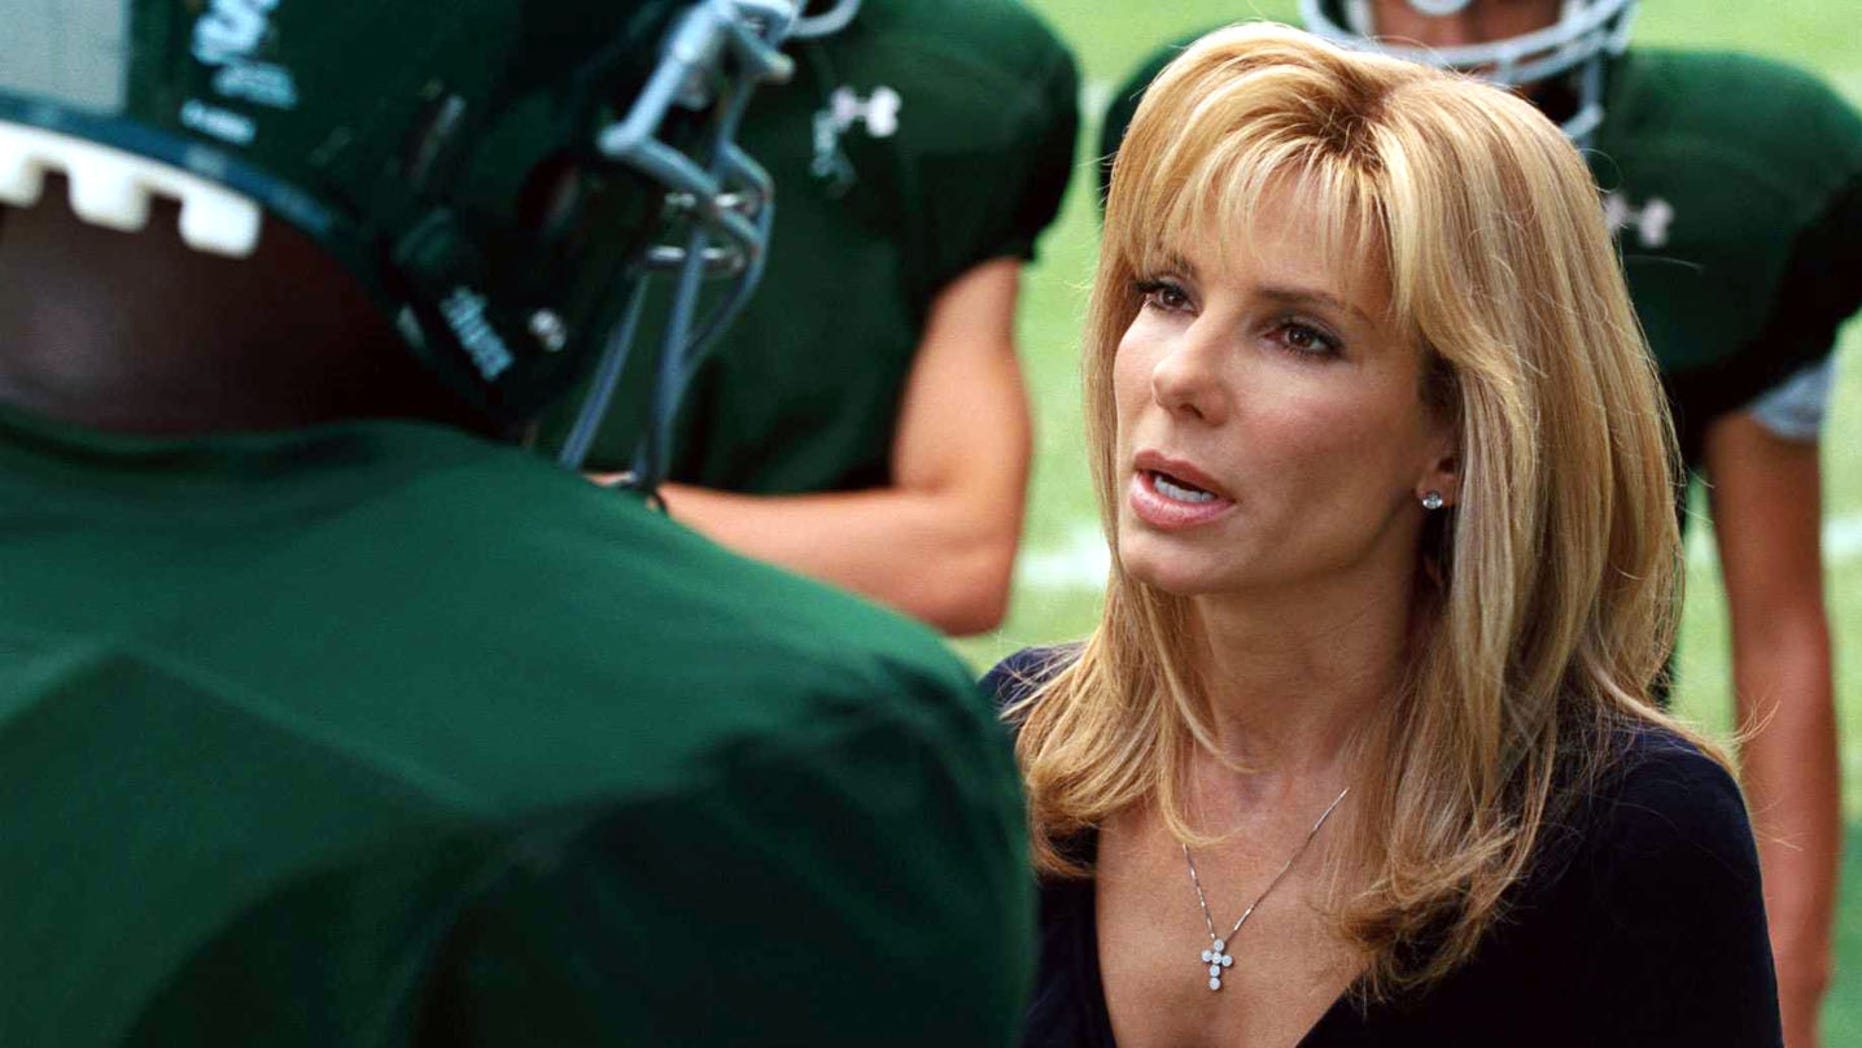 """BSFC-00040 SANDRA BULLOCK as Leigh Anne Tuohy in Alcon Entertainment's drama """"The Blind Side,"""" a Warner Bros. Pictures release."""